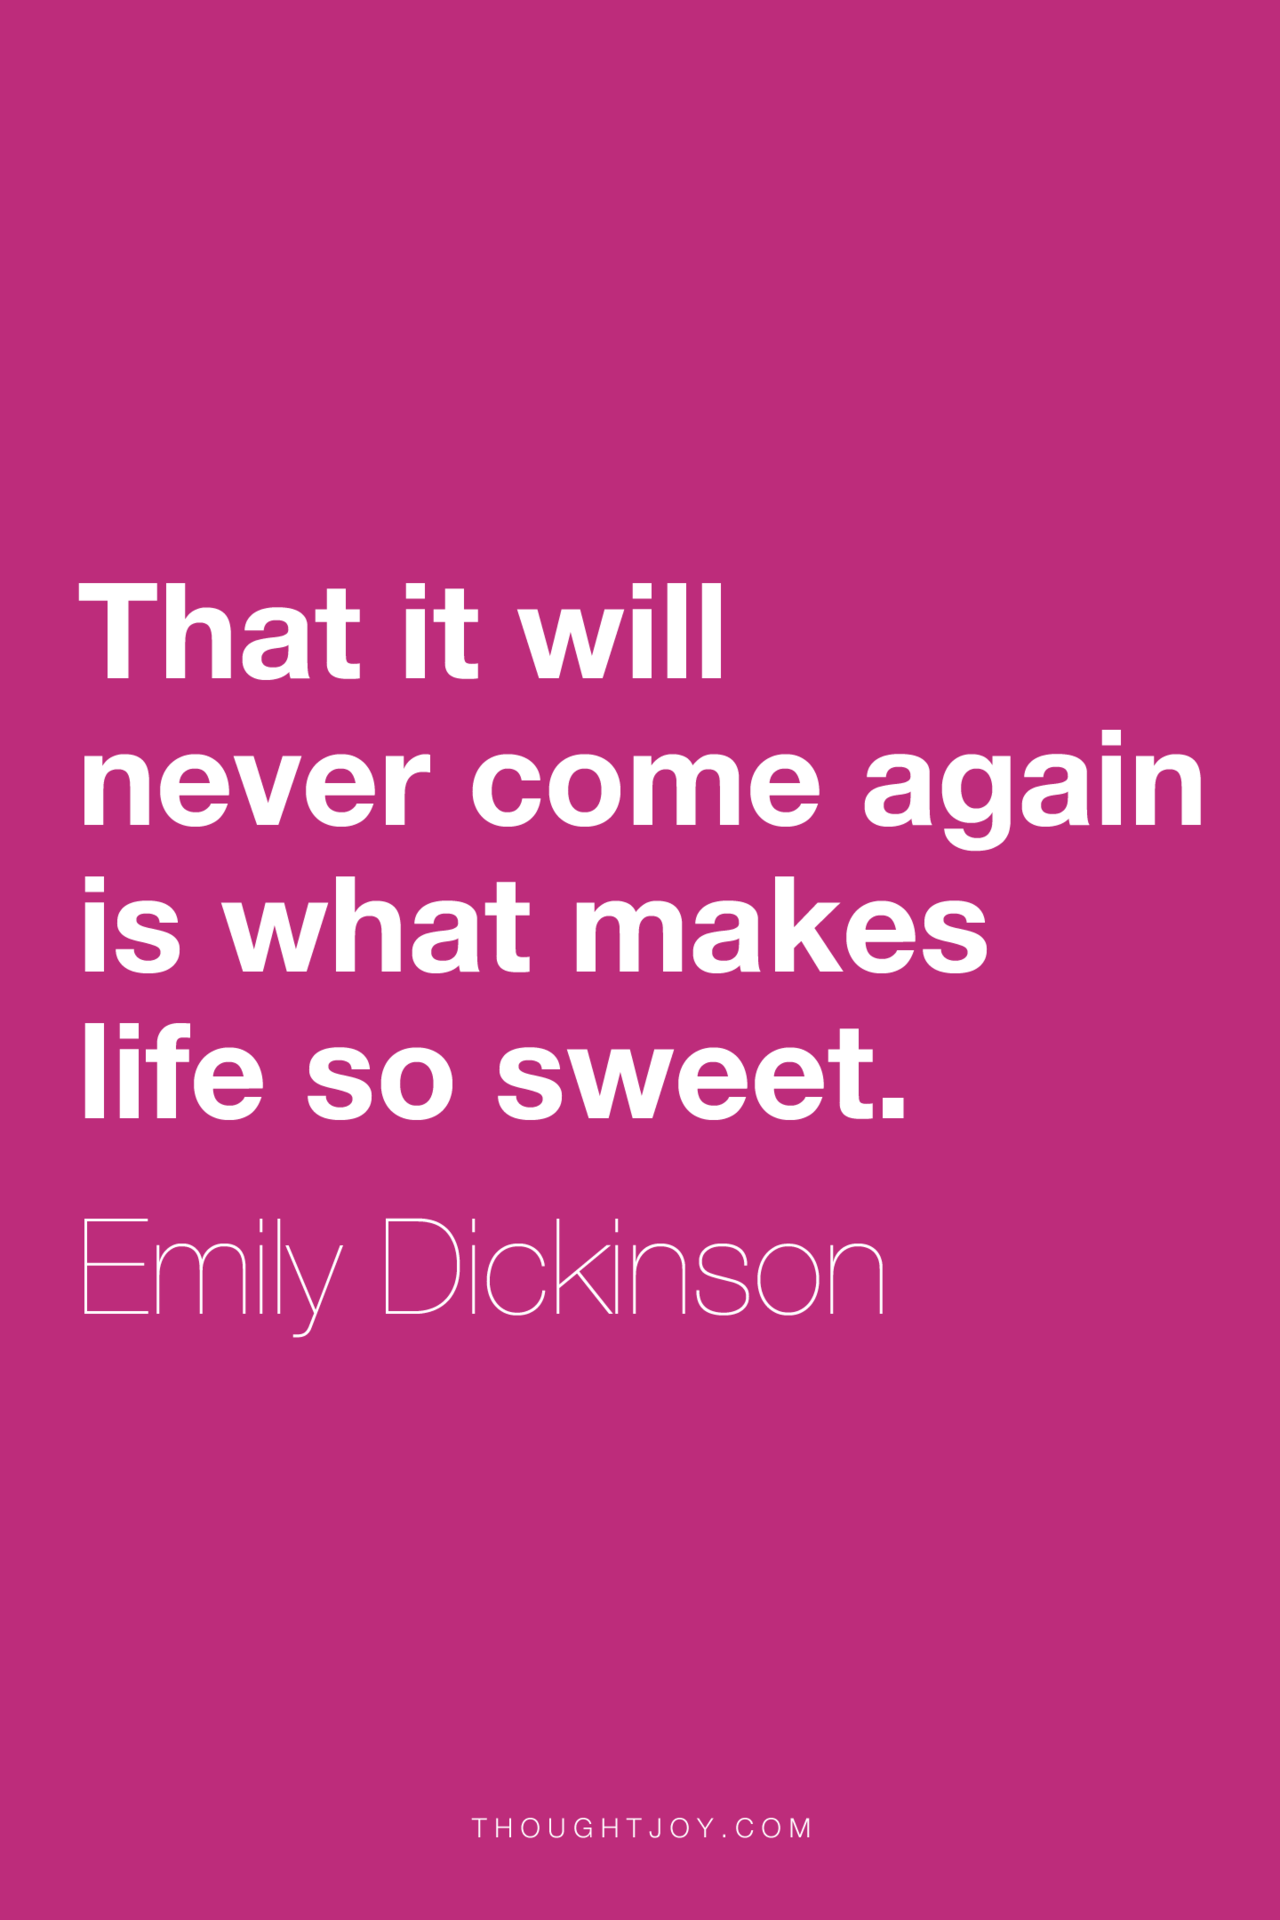 """""""That it will never come again is what makes life so sweet.""""  ― Emily Dickinson"""